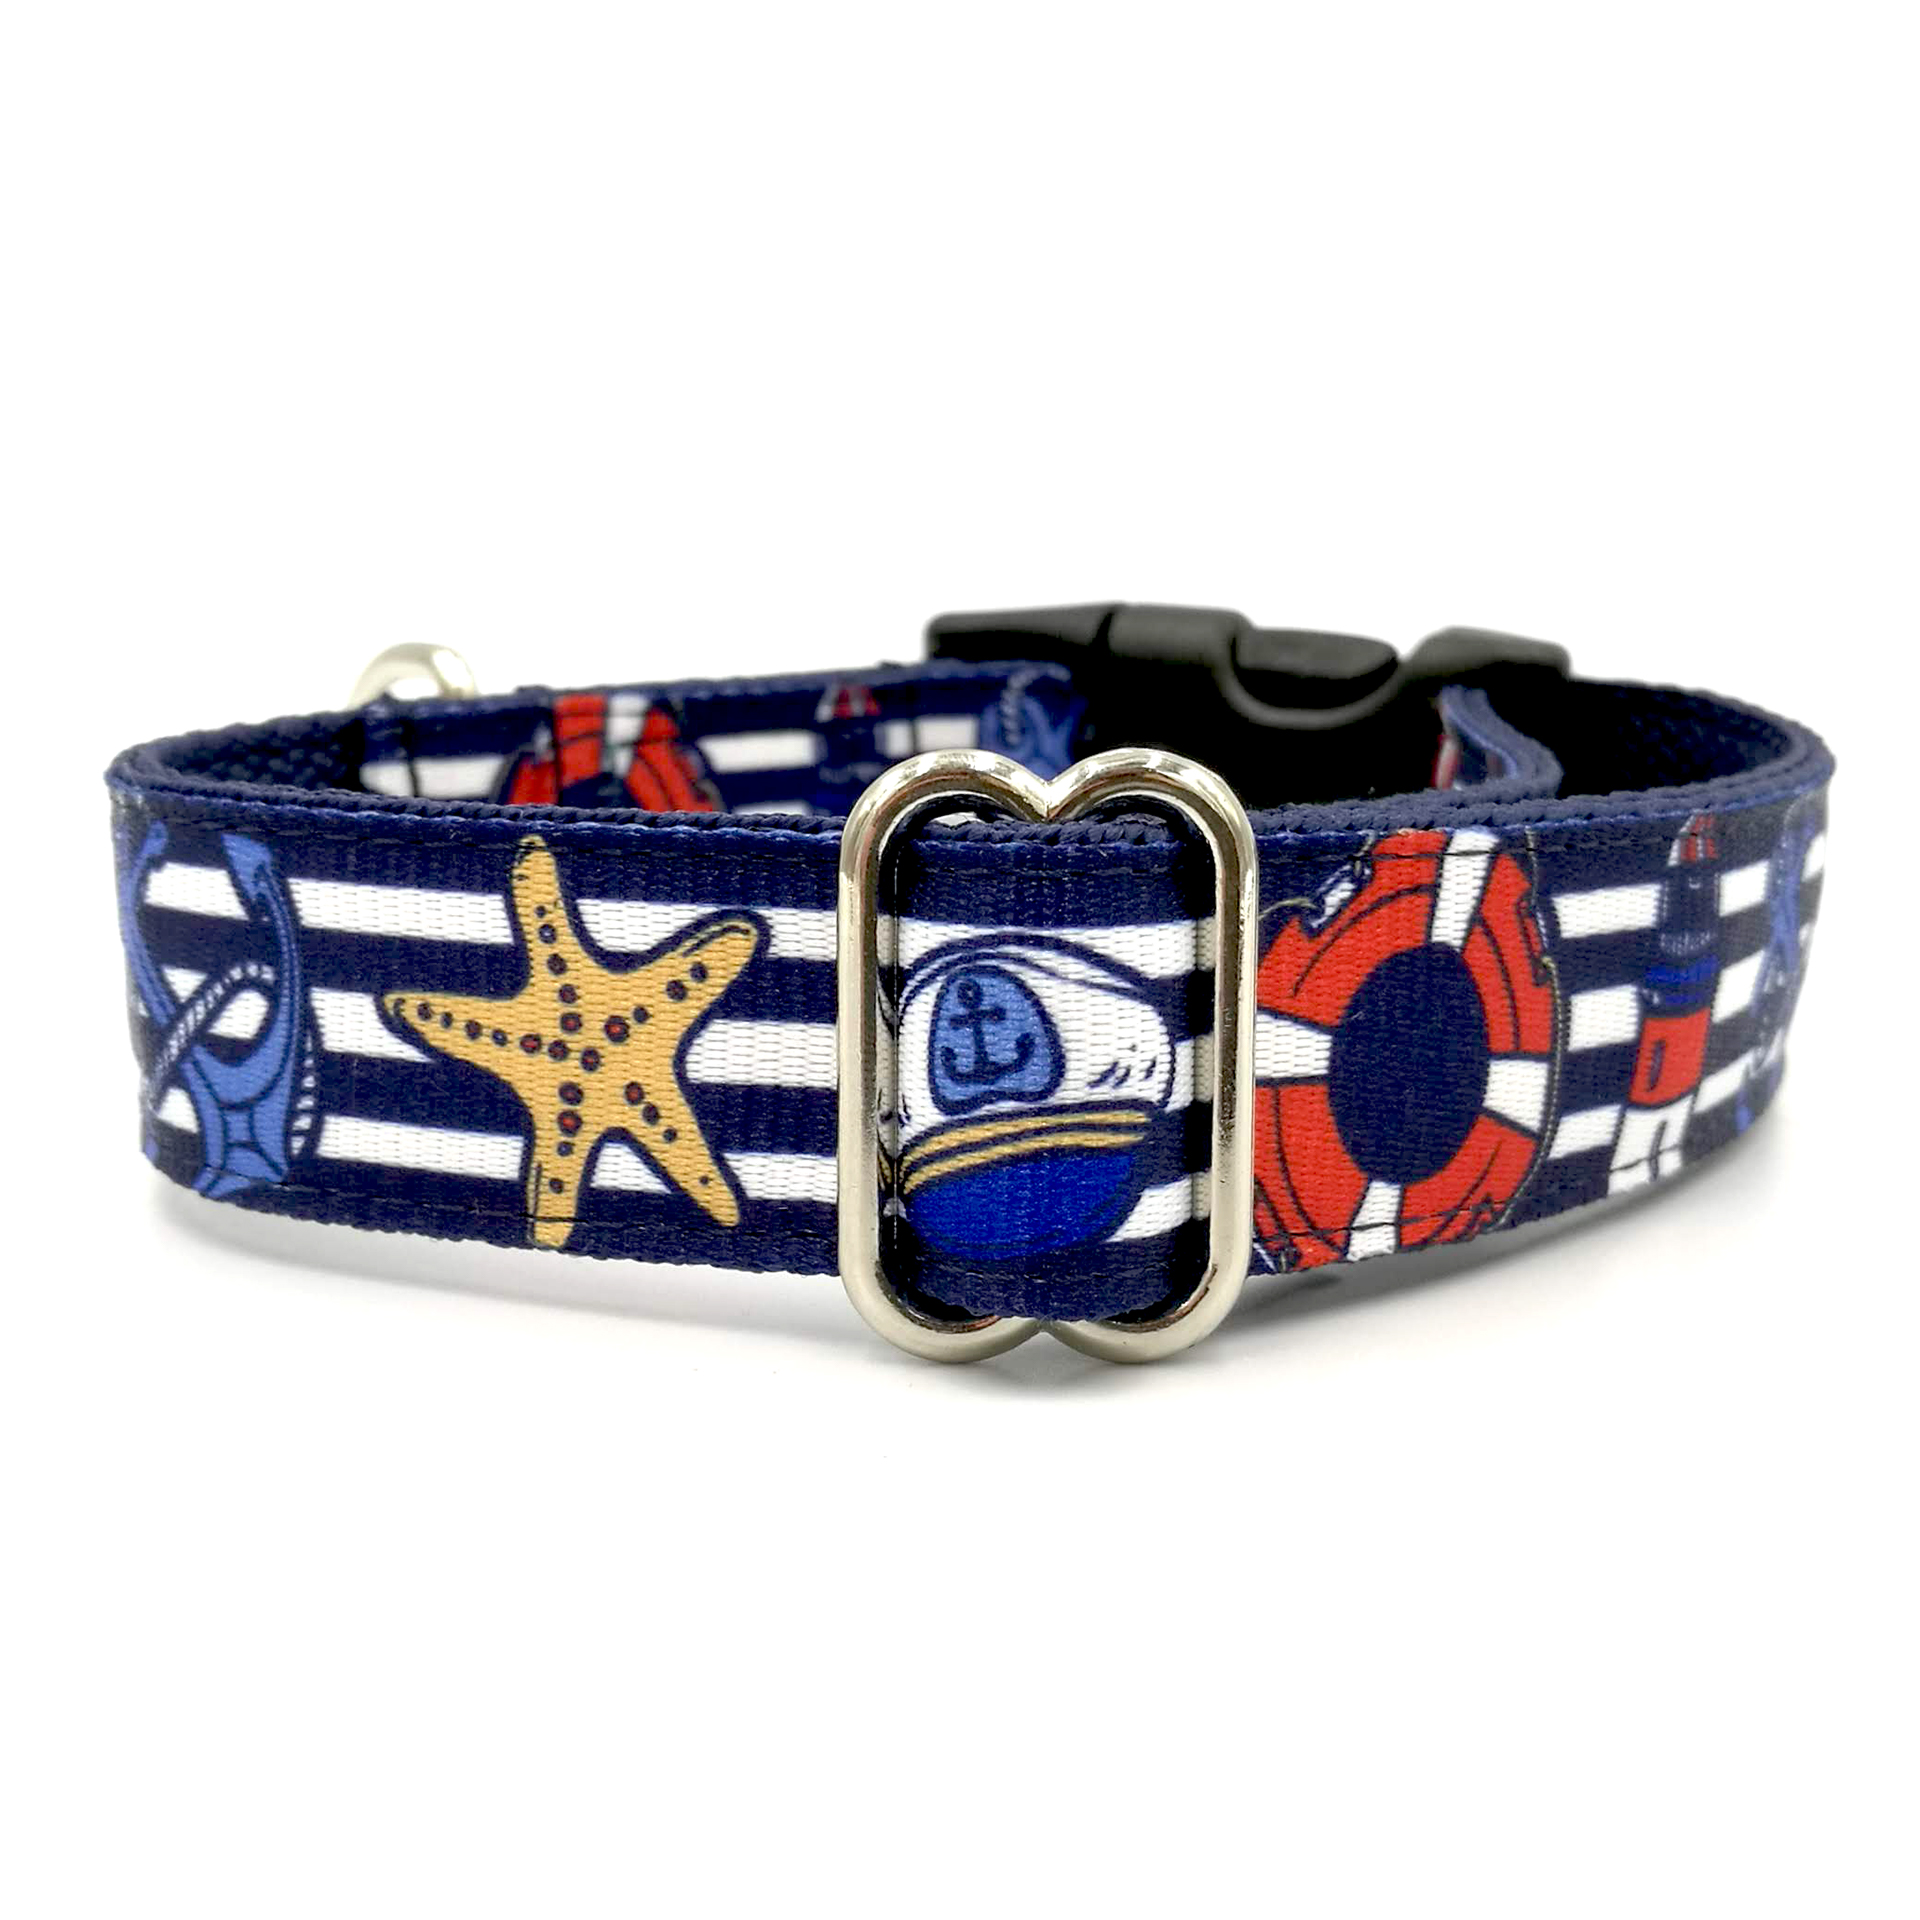 Marine blue dog collar